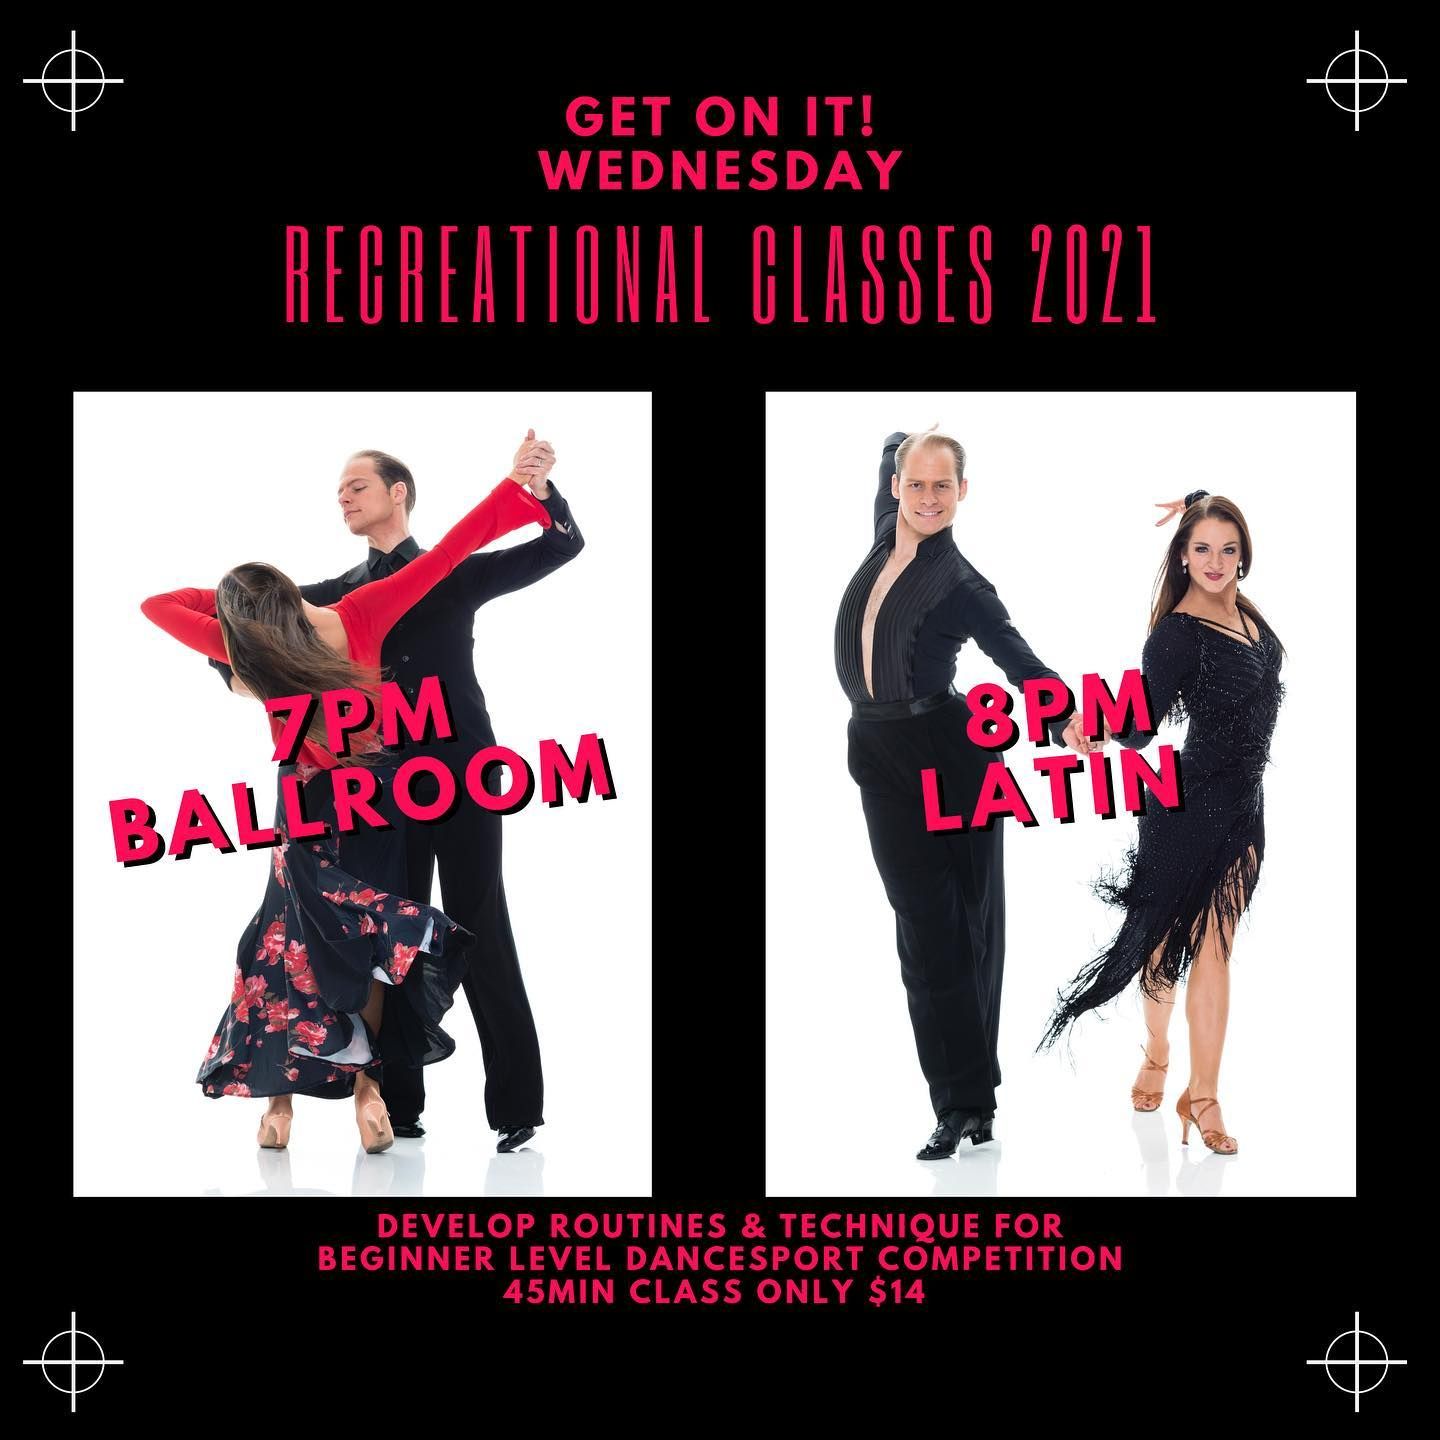 Image may contain: 3 people, people dancing, text that says 'GET ON IT! WEDNESDAY REGREATIONAL CLASSES 2021 8PM LATIN BALLROOM DEVELOUTINE&TECIQUEFR DEVELOP ROUTINES TECHNIOU FOR BEGINNER LEVEL DANCESPORT COMPETITION 45MIN CLASS ONLY $14'